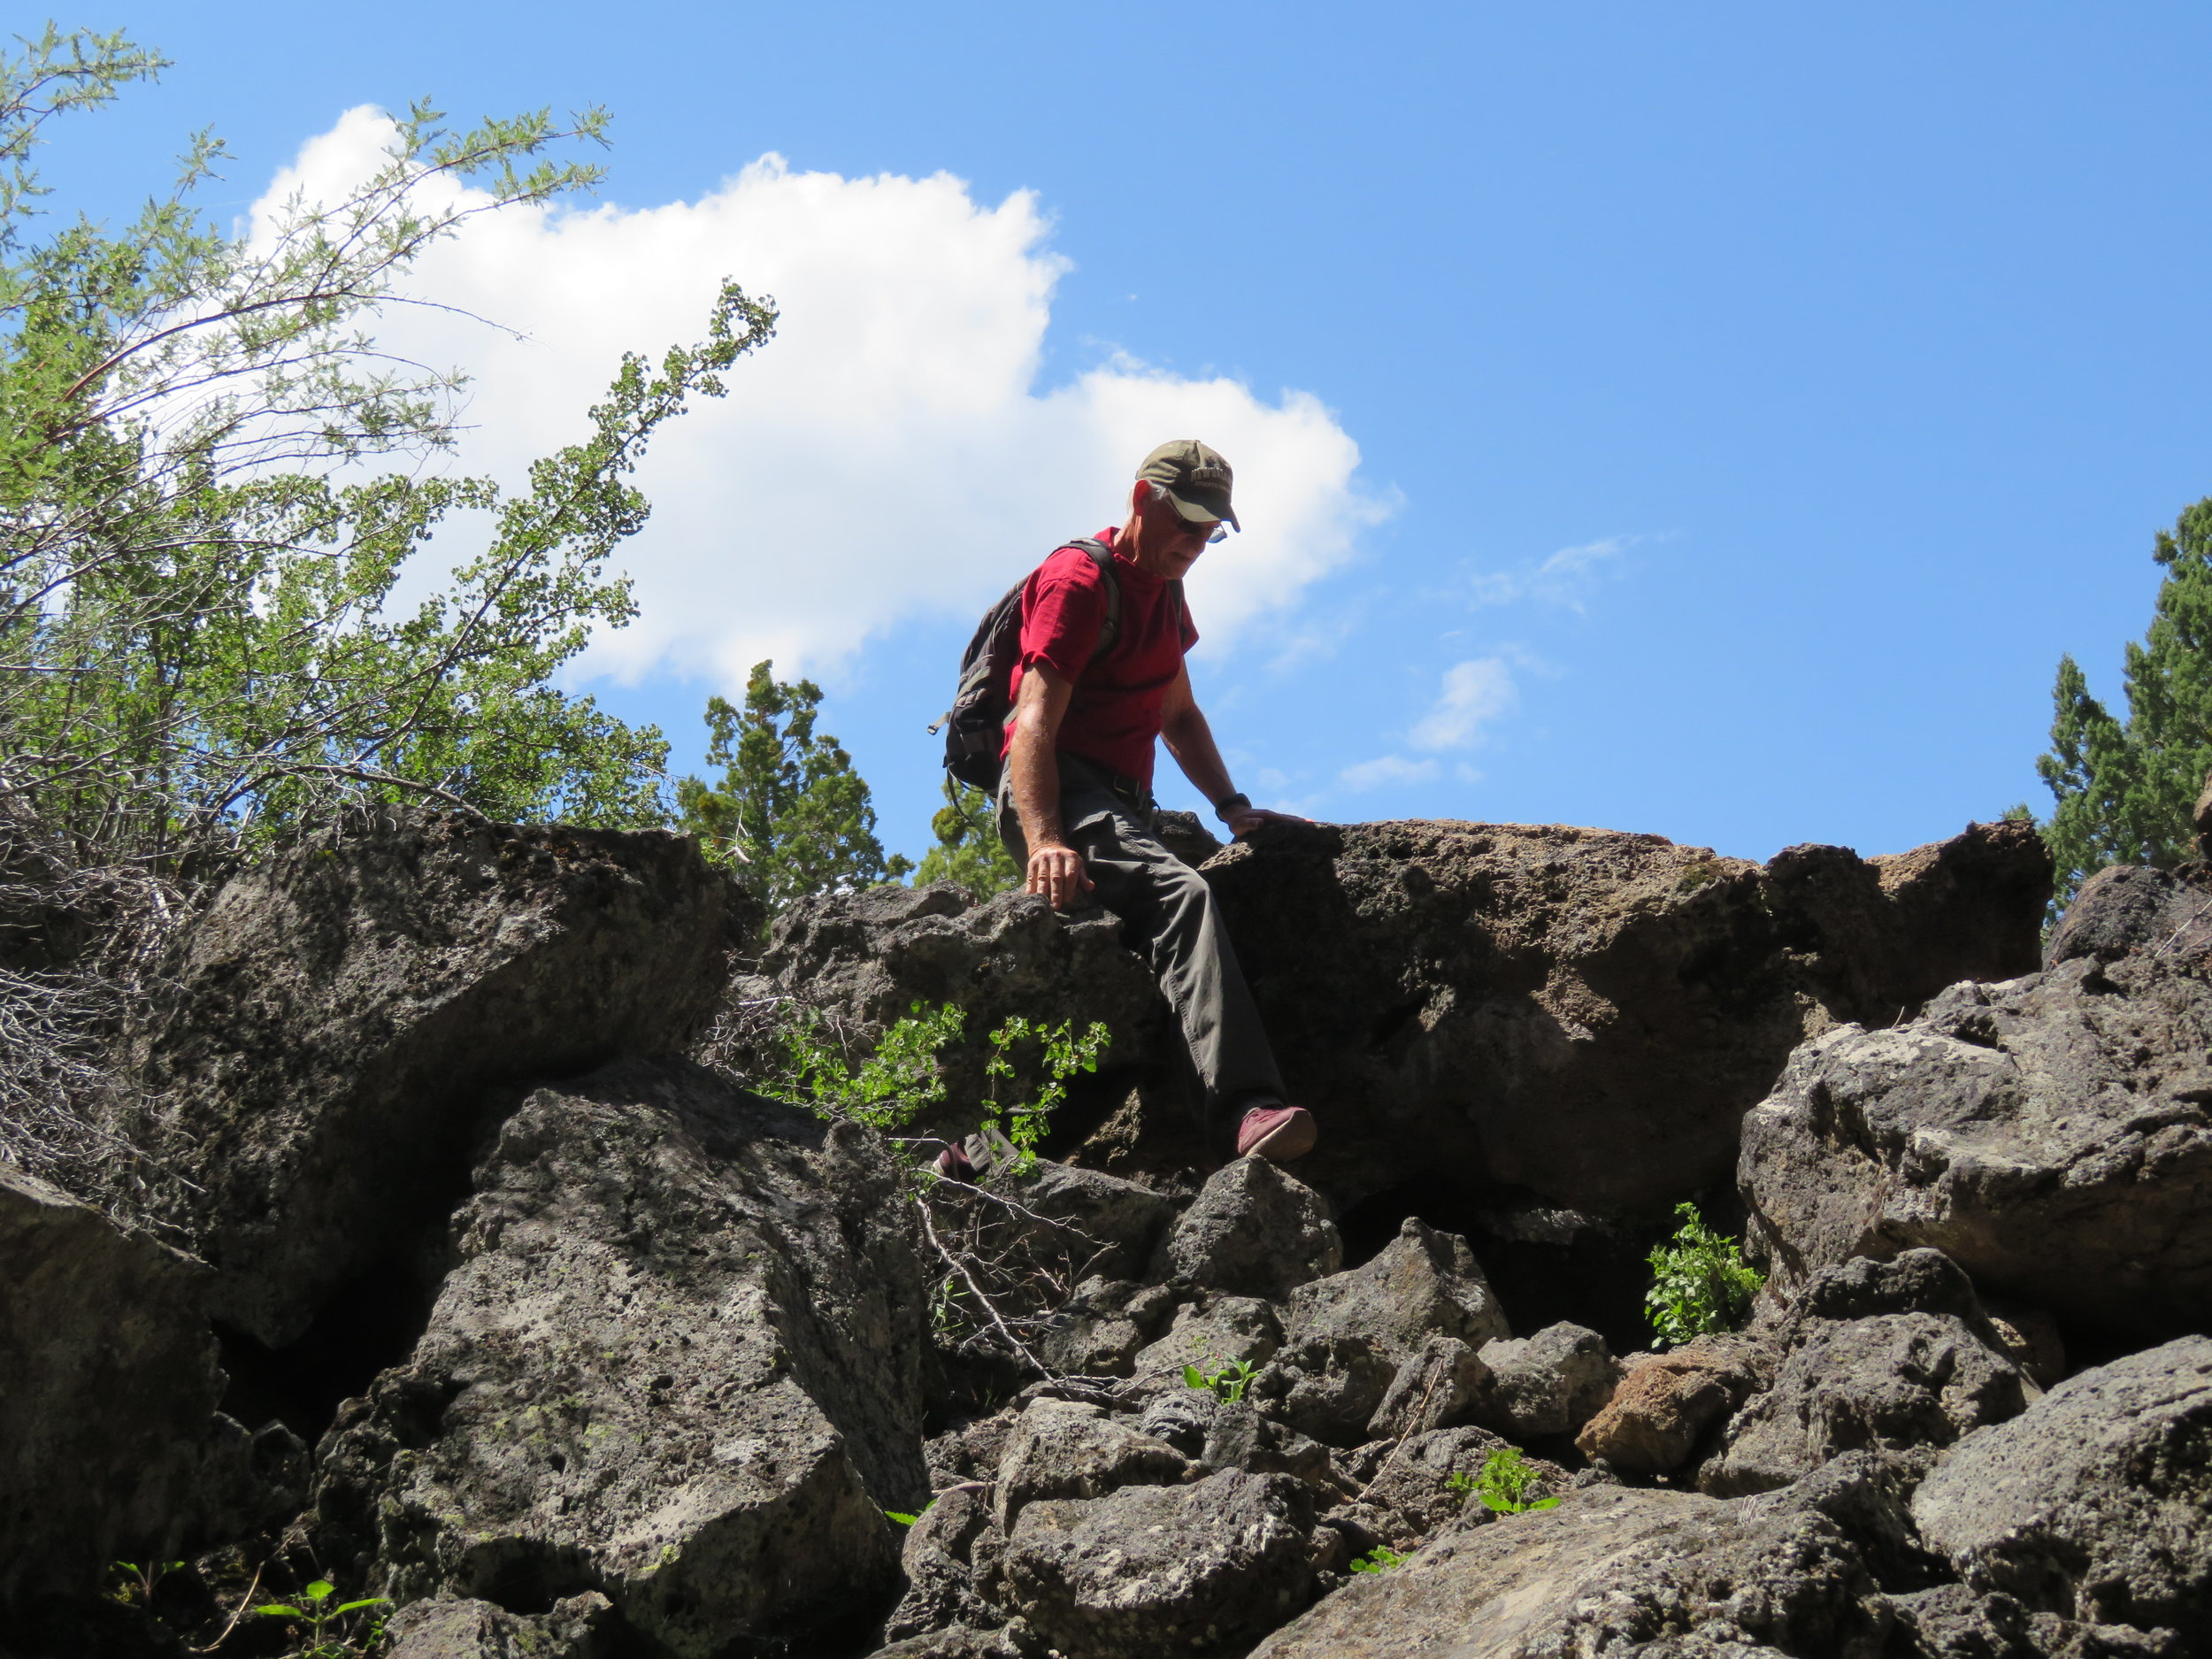 Steep, rough descent into Heppe Cave